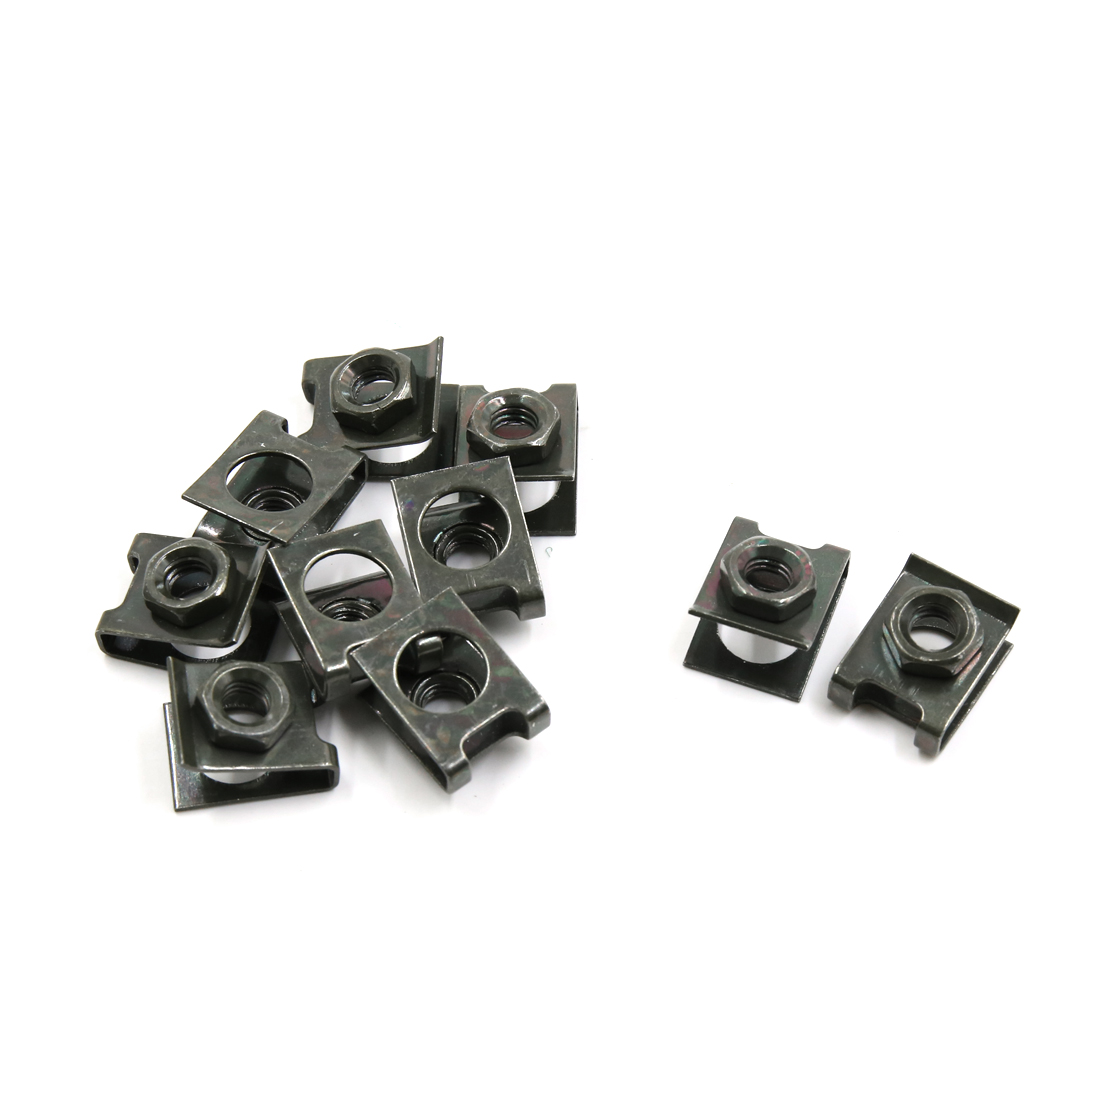 10pcs 5mm Dia Bronze Tone Metal U-Type License Plate Screw Base Clip Speed Nuts